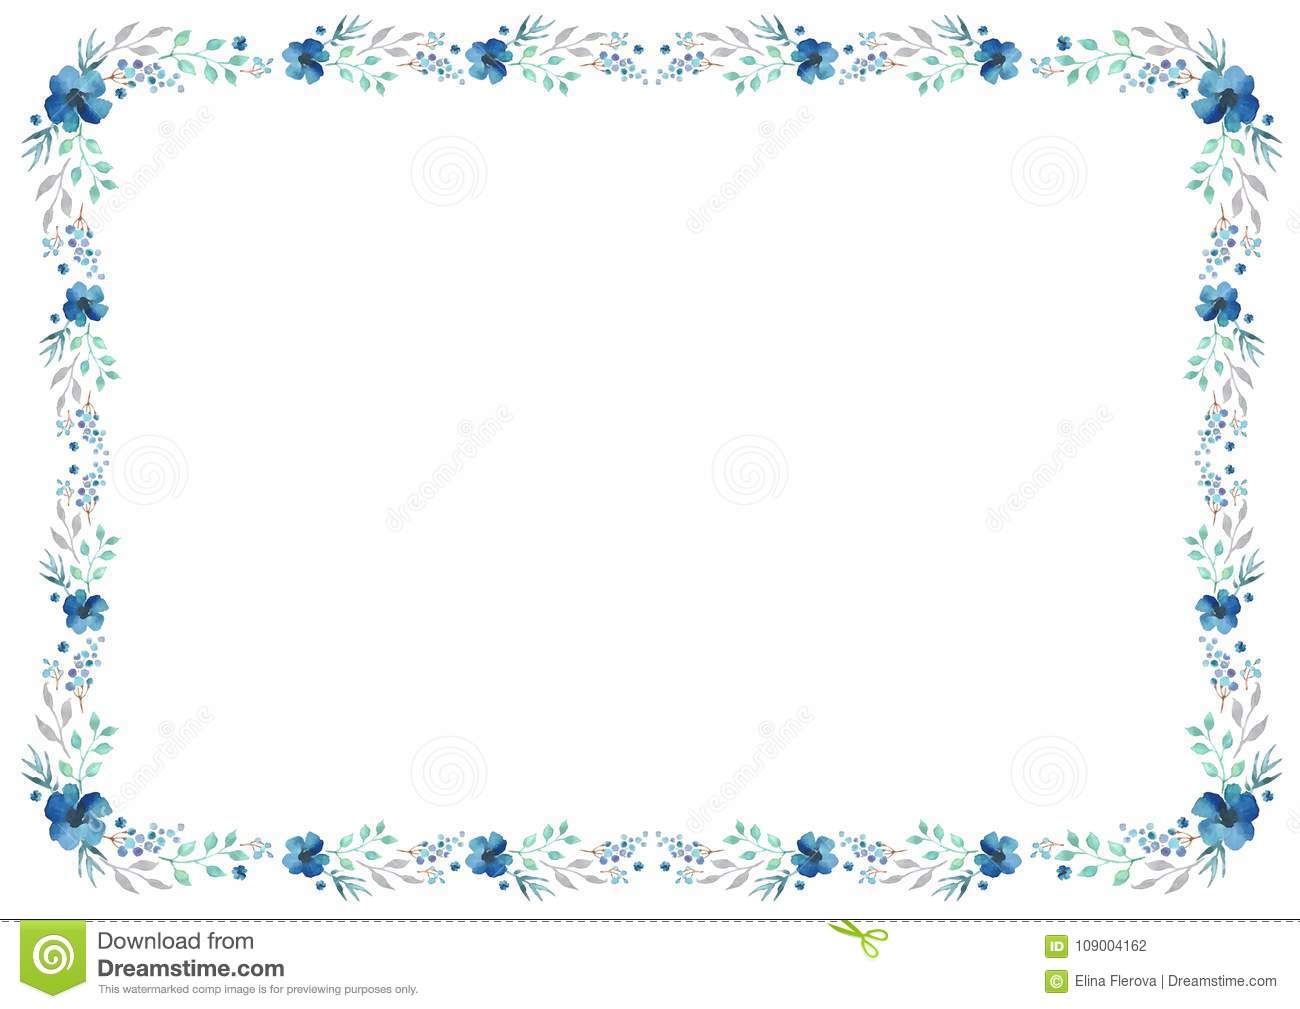 floral frame template with blue flowers and swirly leaves on white